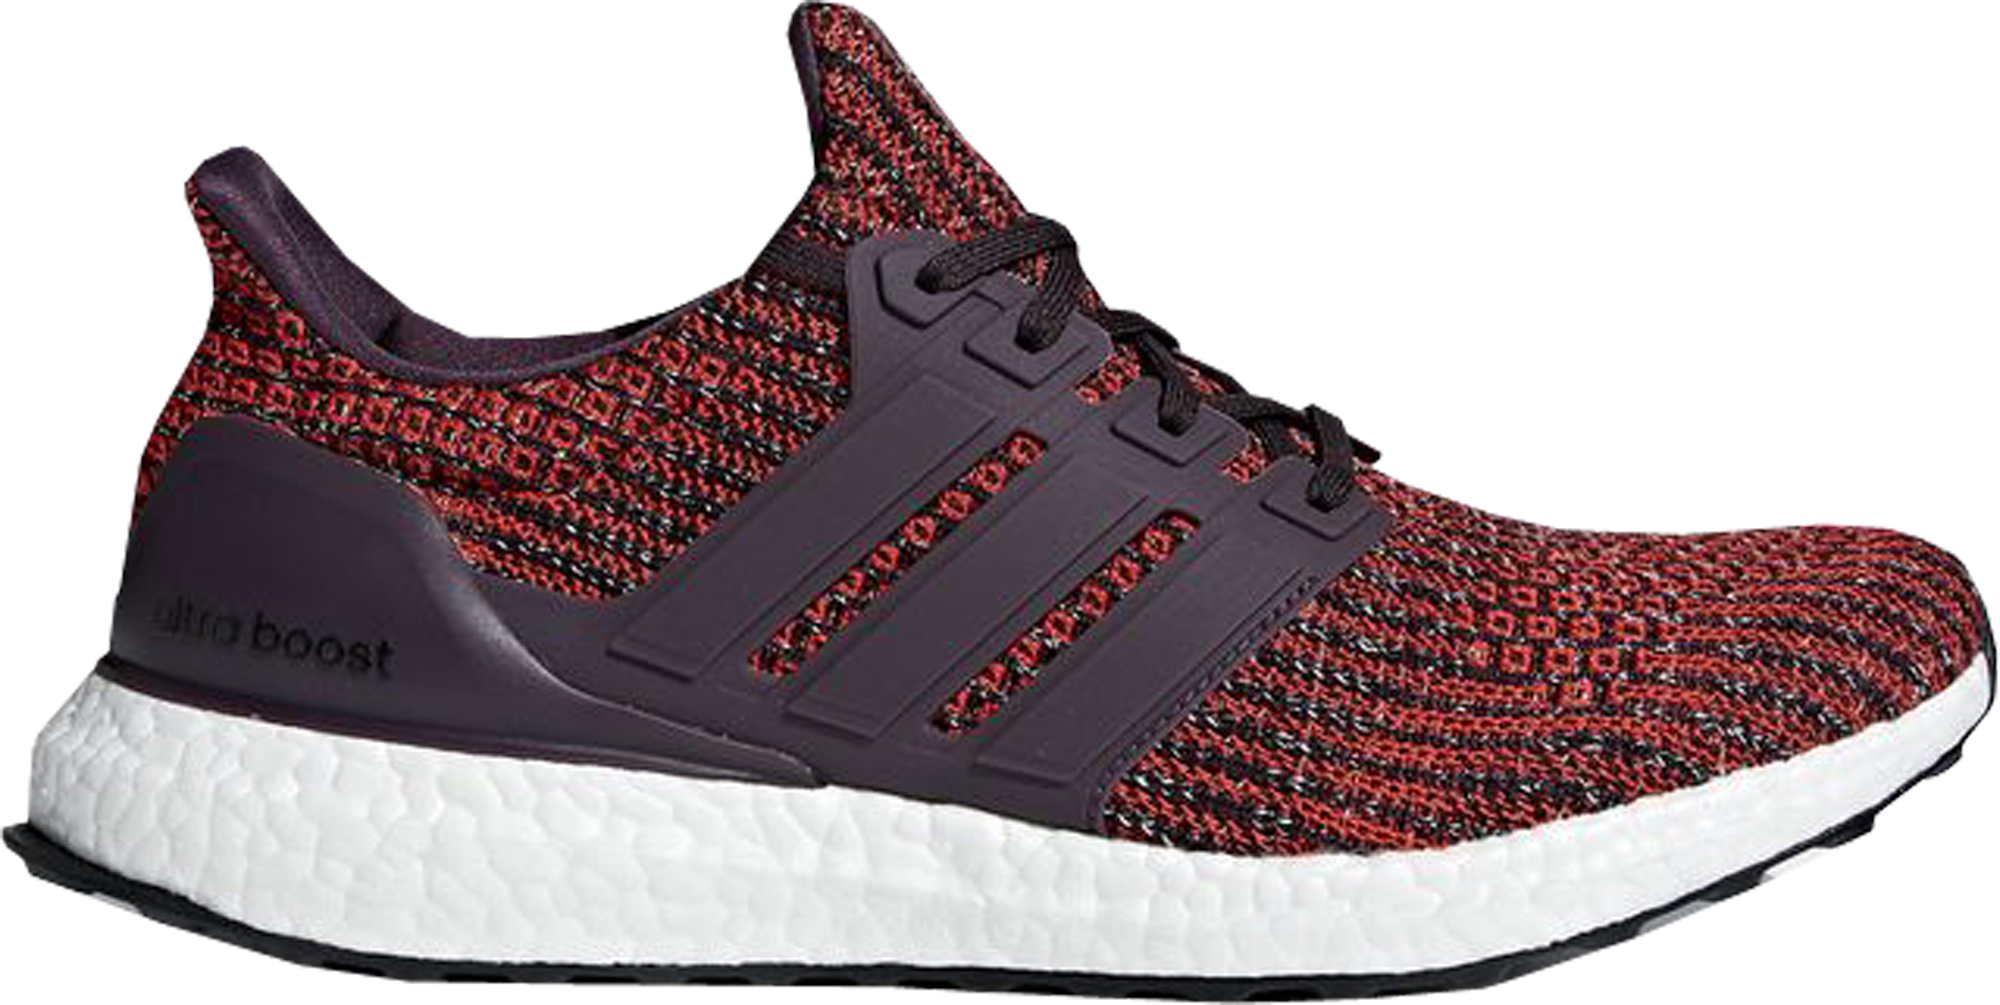 adidas Ultra Boost 4.0 Deep Burgundy